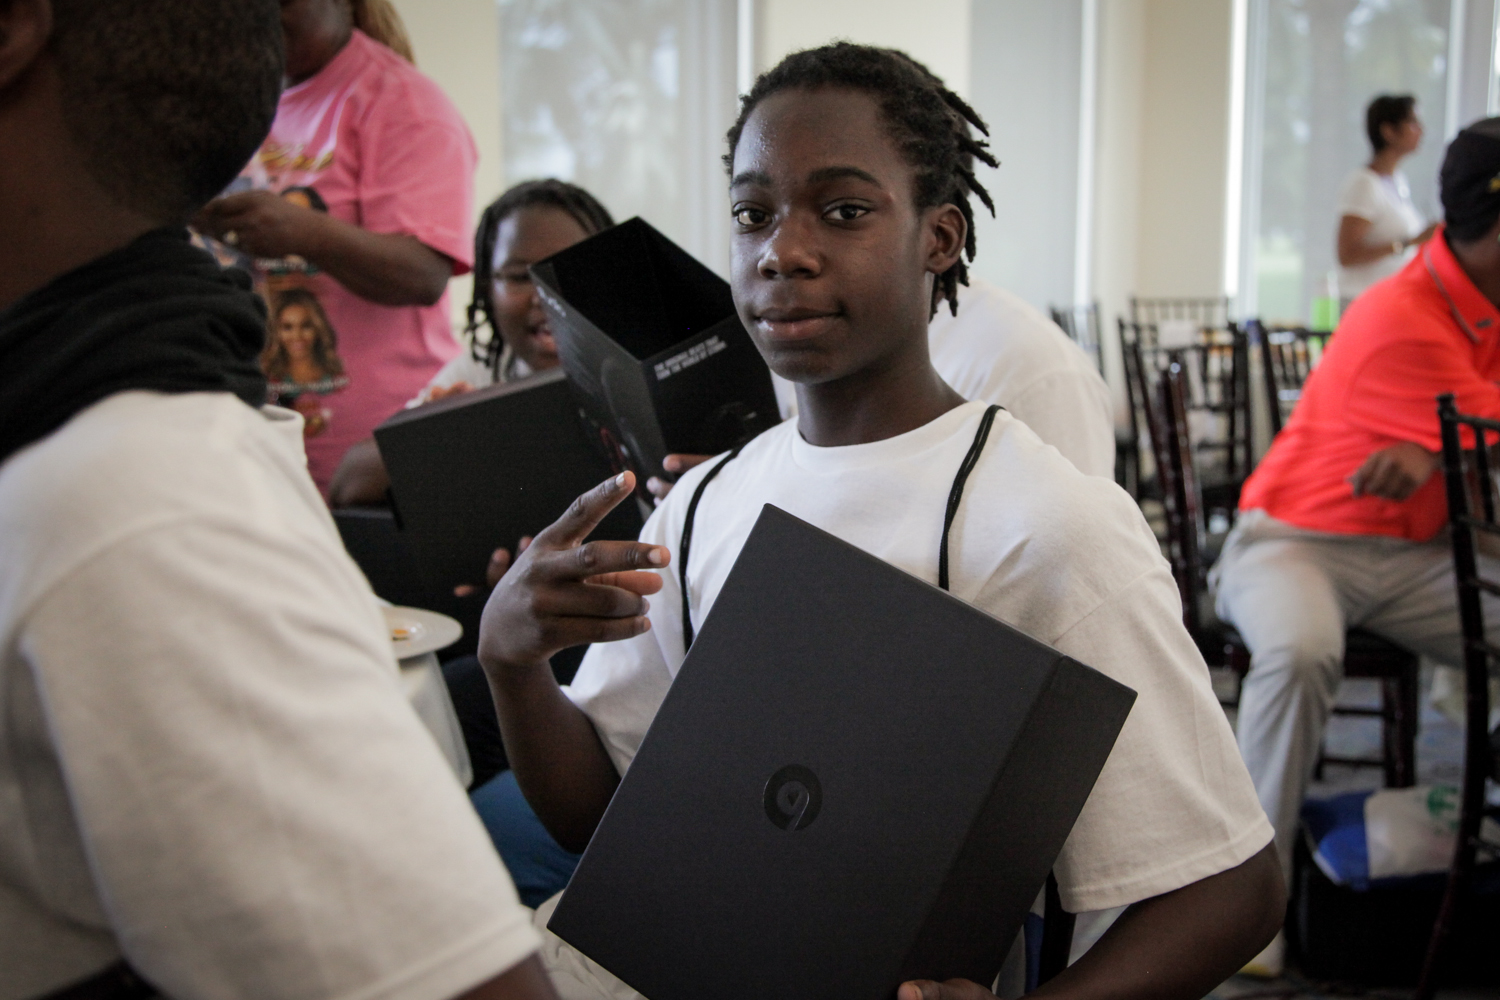 Youth Golf Clinic - Kid Peace Sign with Beats Box.jpg